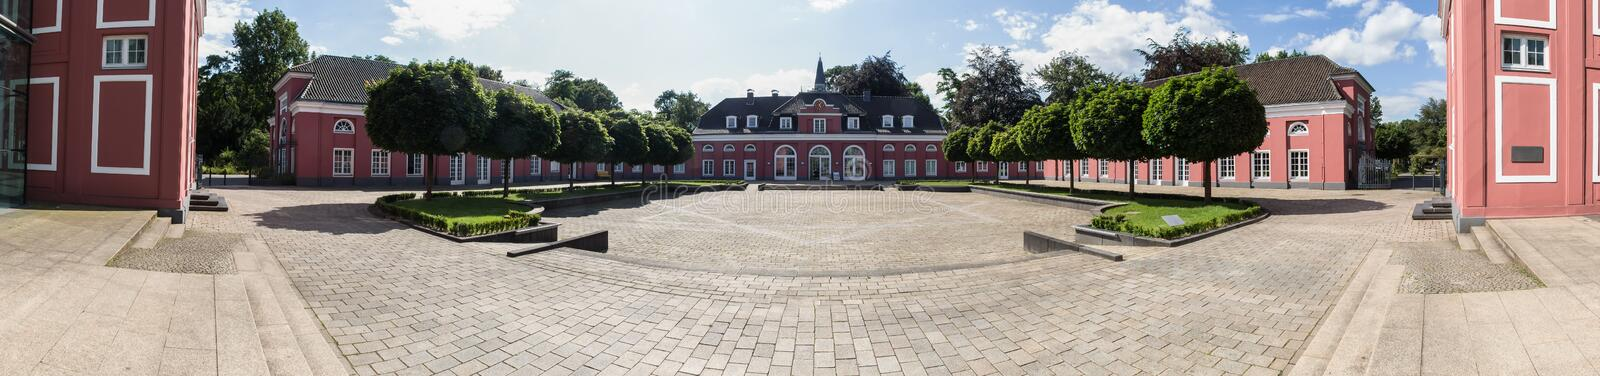 Castle oberhausen germany high definition panorama. The castle oberhausen germany high definition panorama royalty free stock photos